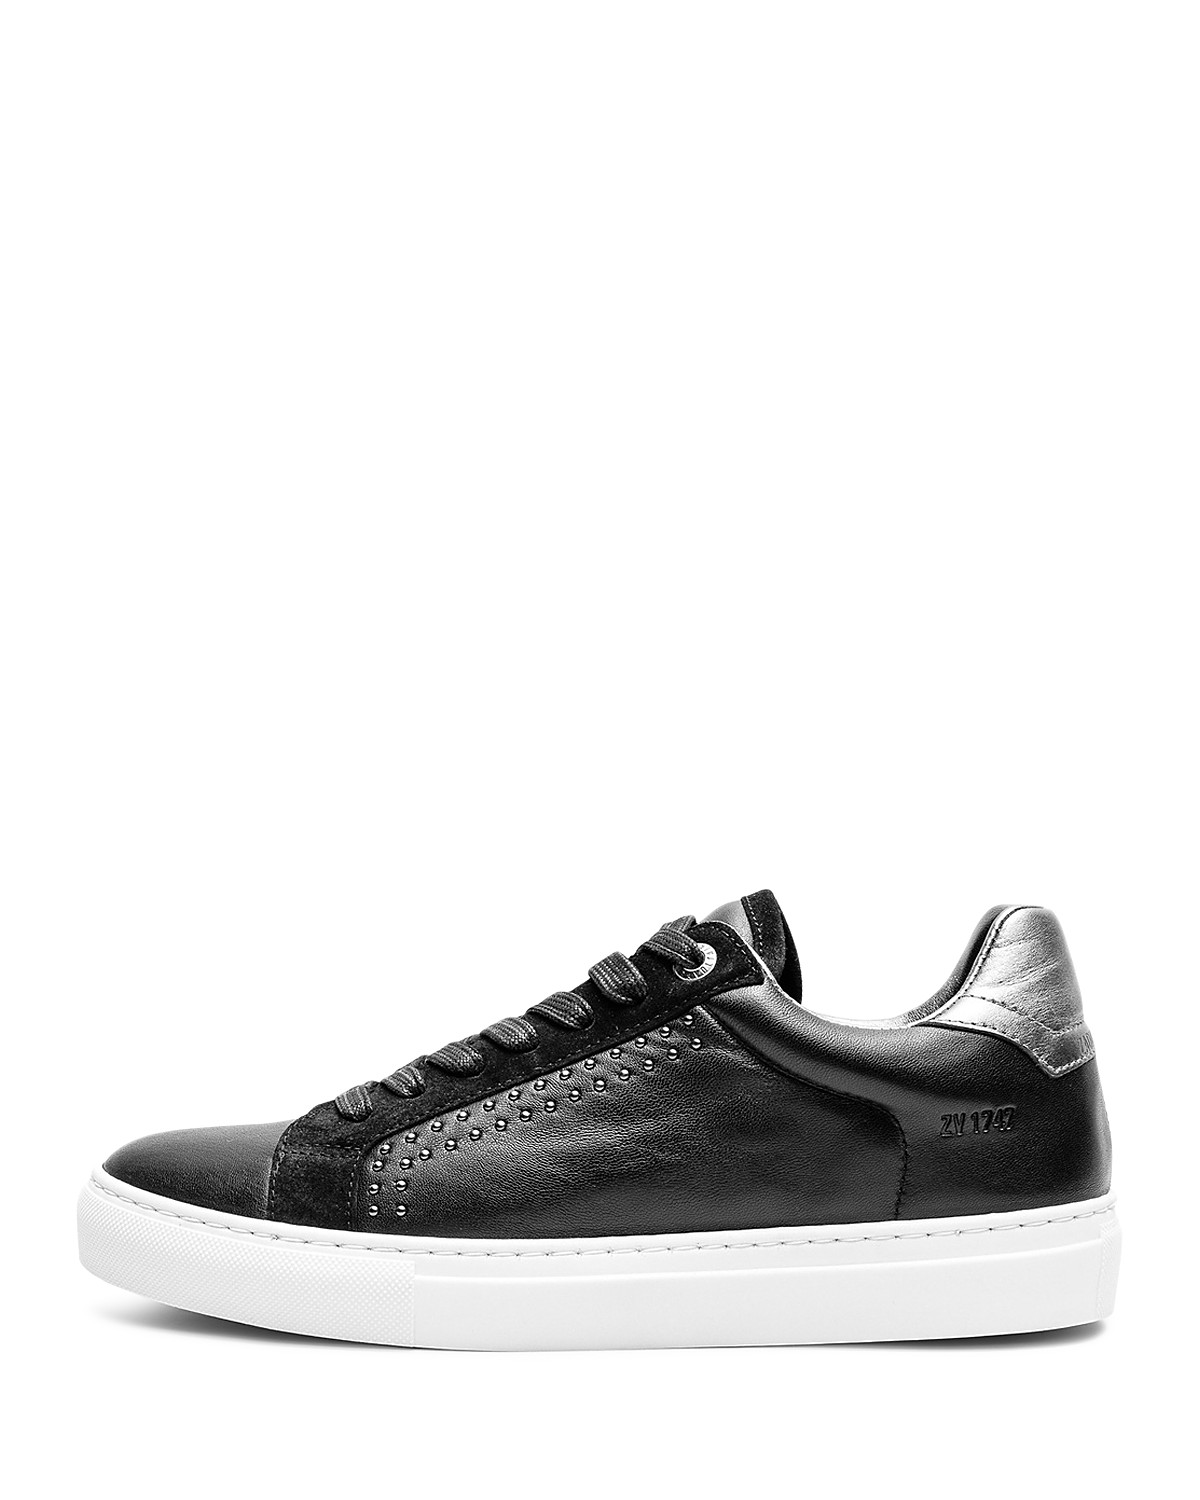 Zadig & Voltaire Women's ZV1747 Skulls Leather Low Top Lace Up Sneakers 5u48ljP